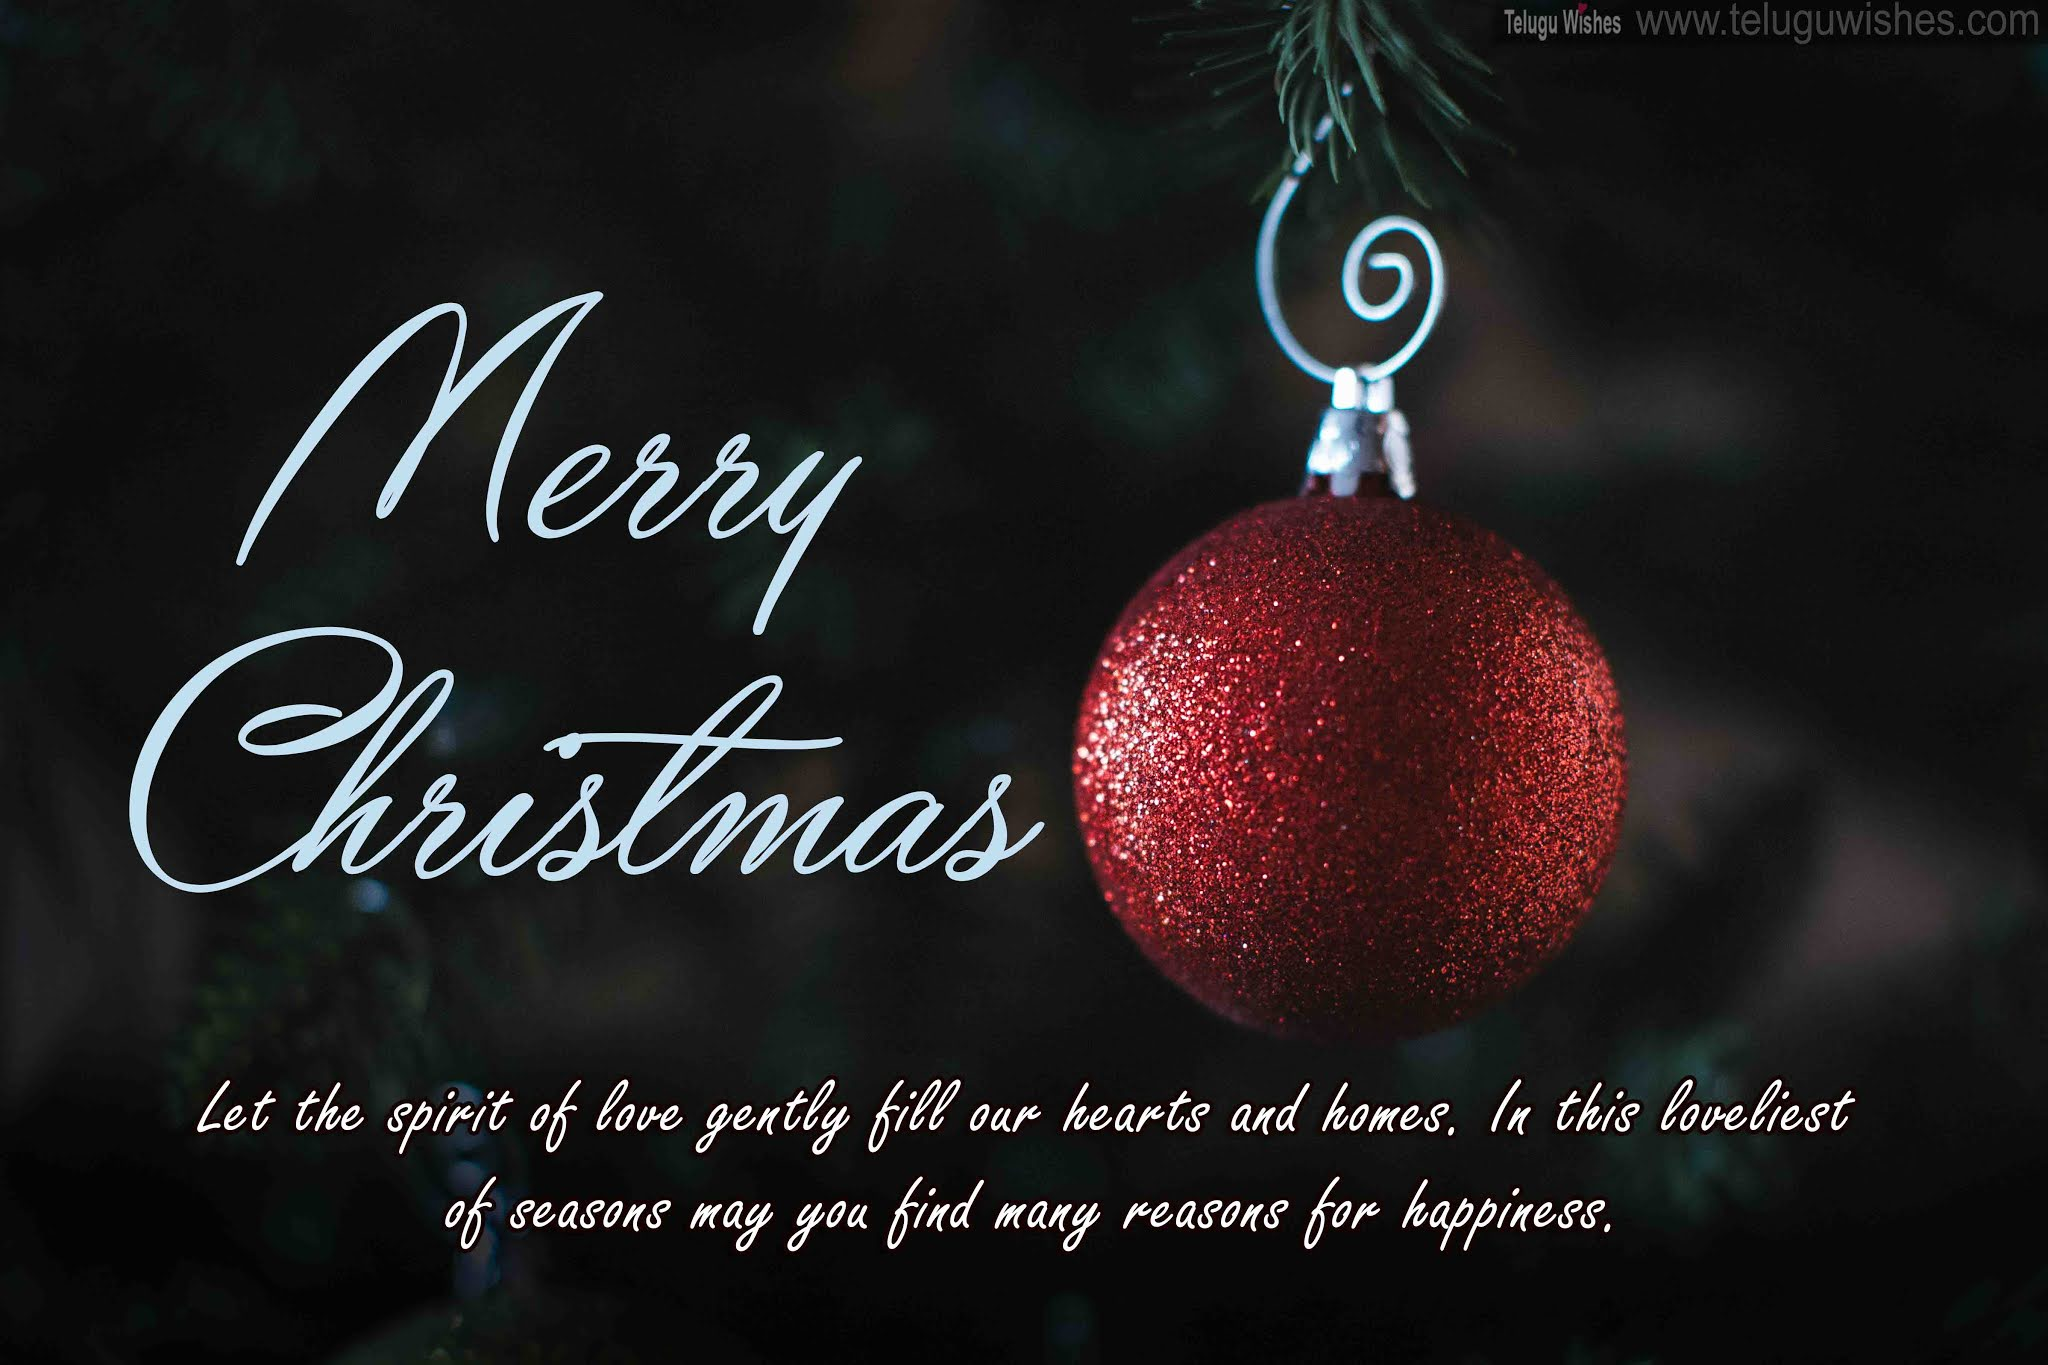 Family Christmas wishes images